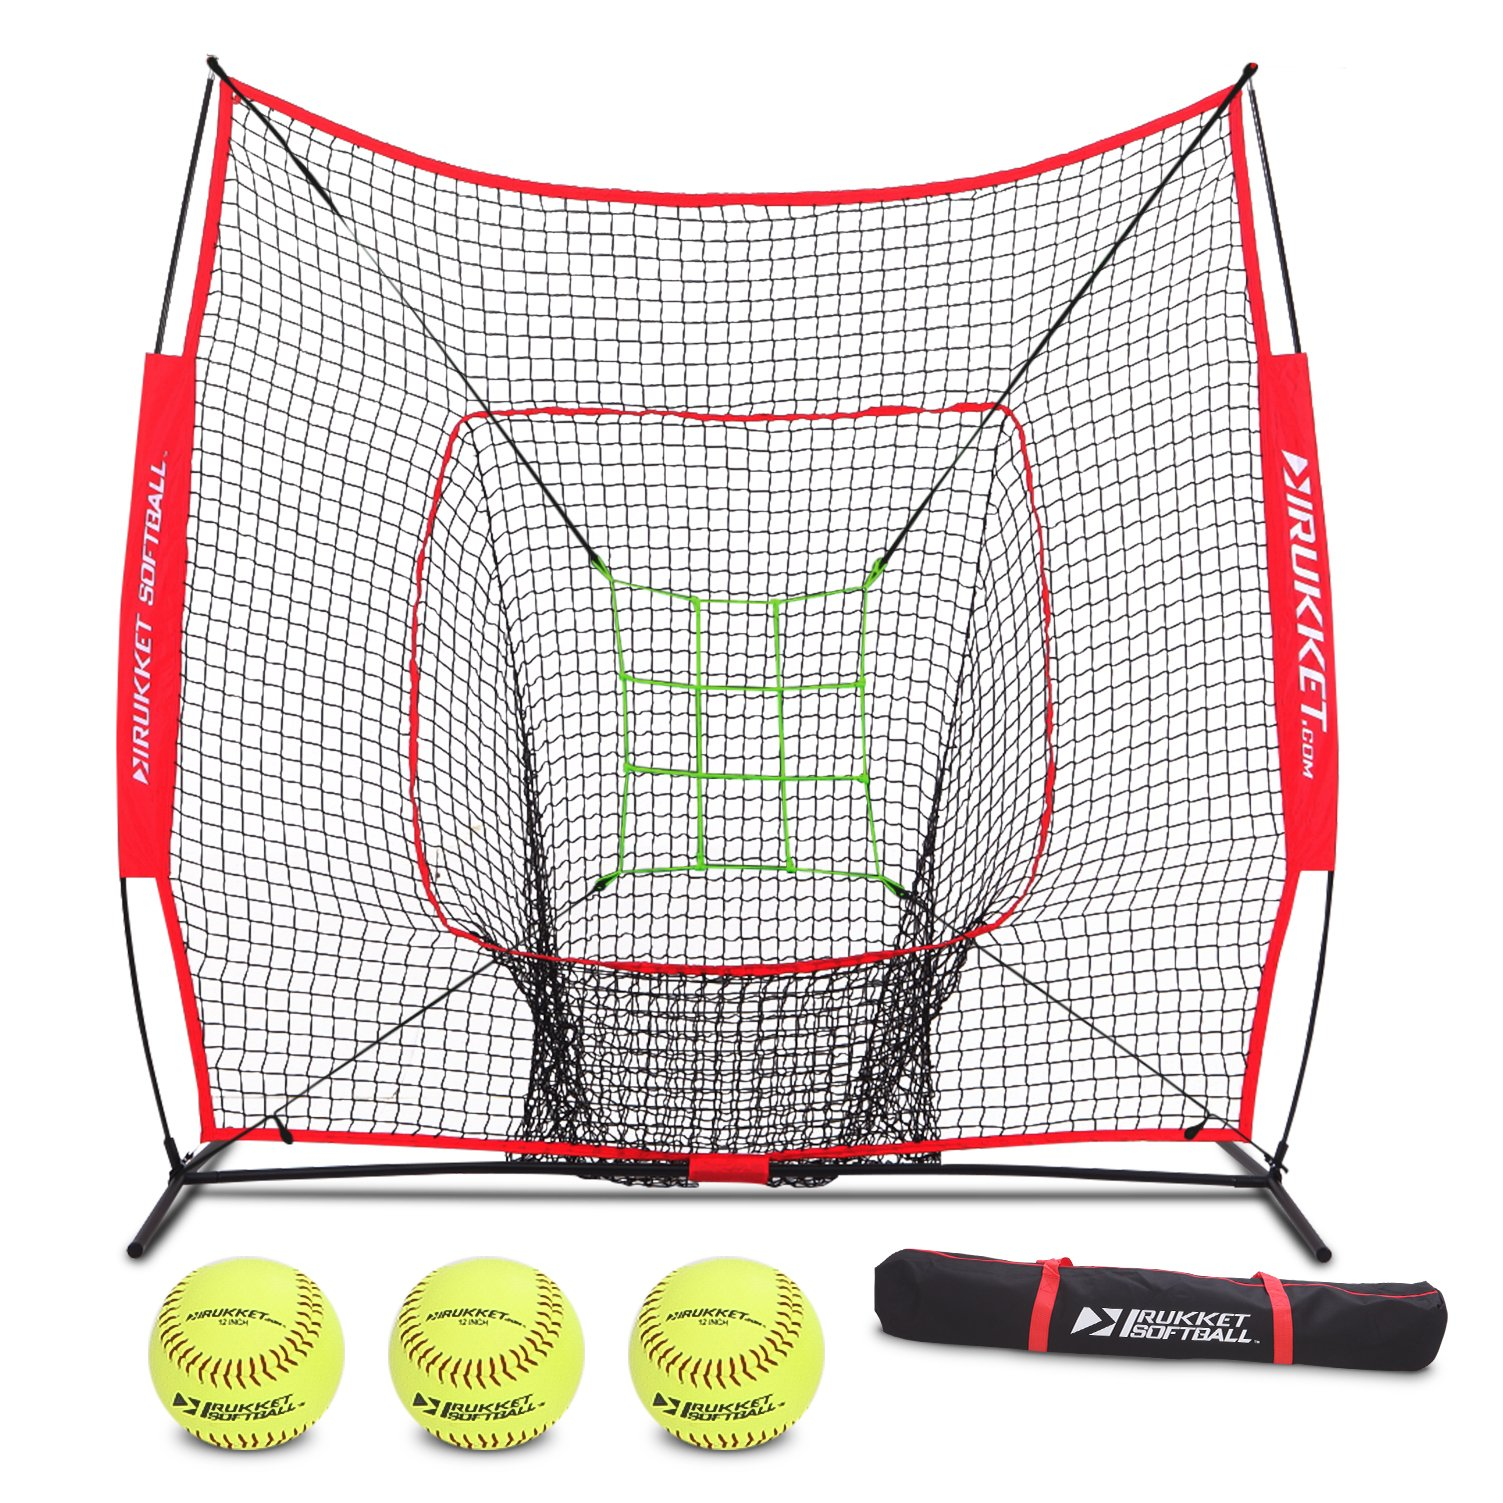 Rukket 6pc Softball Bundle | 7x7 Hitting Net | Batting, Pitching, Catching Screen | Includes Bow Frame Net, 3 Softballs, Strike Zone and Carry Bag by Rukket Sports